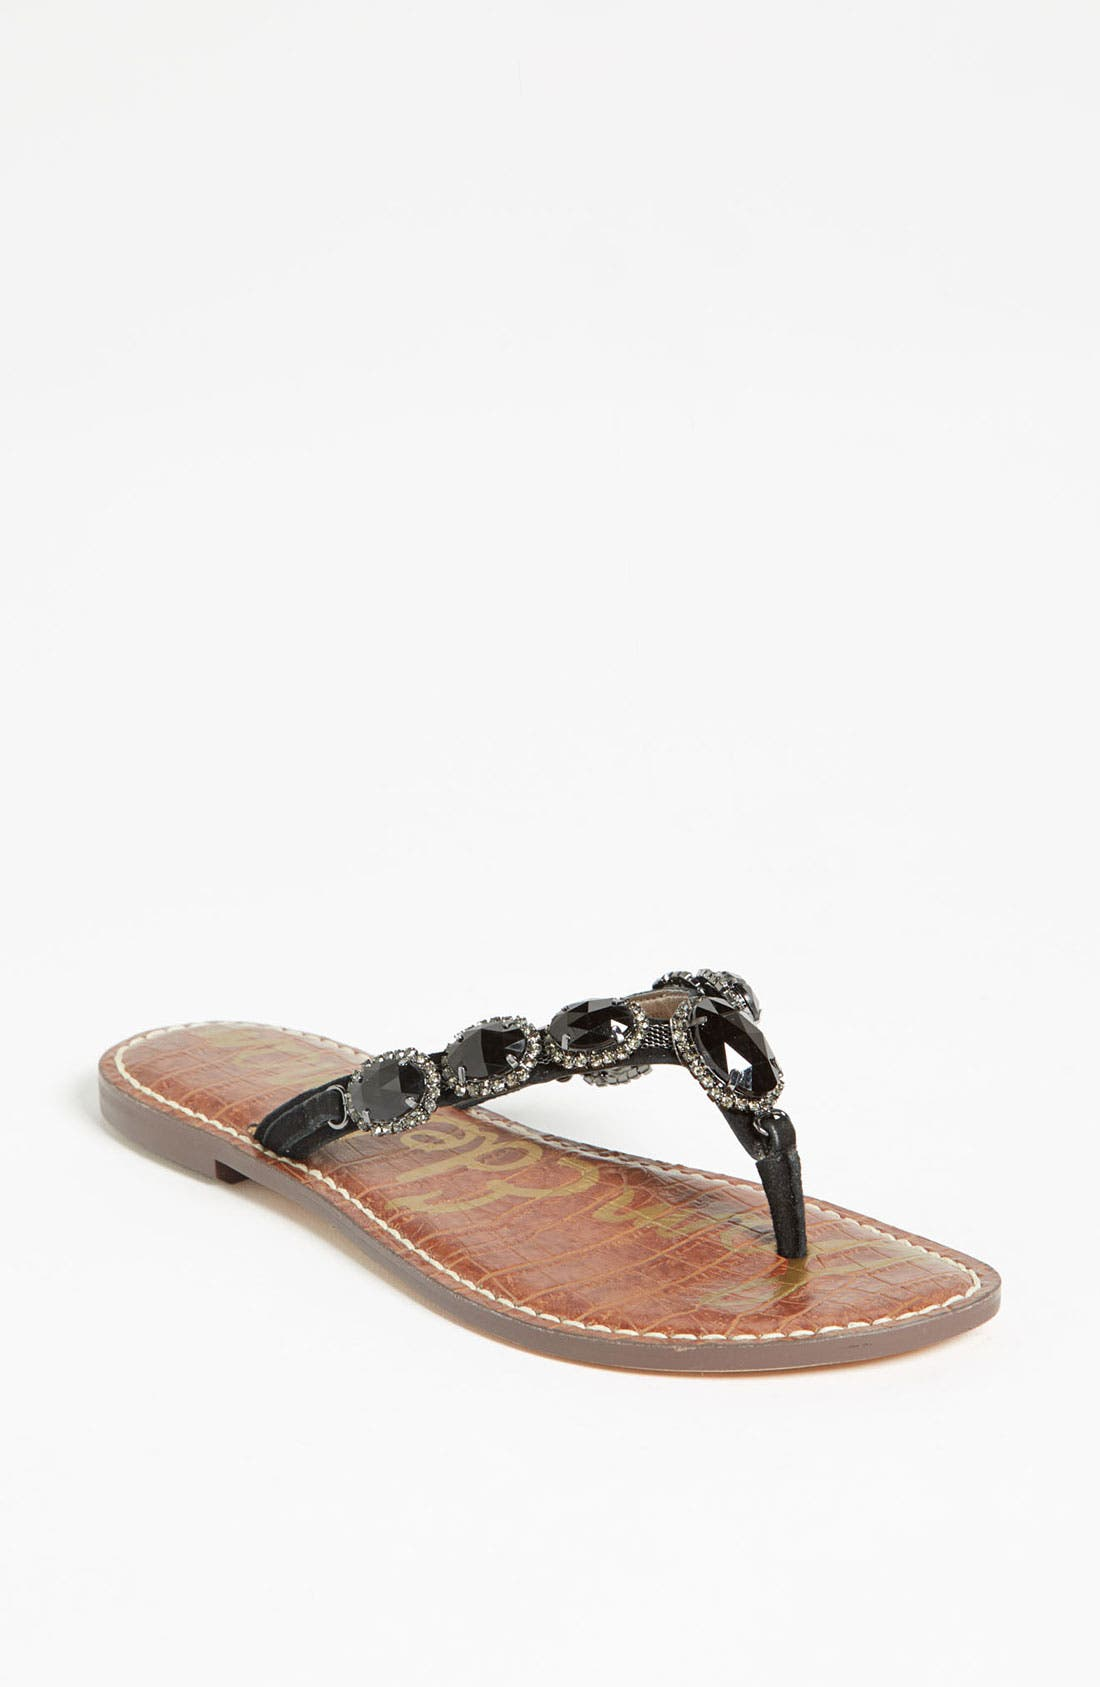 Main Image - Sam Edelman 'Gracelyn' Sandal